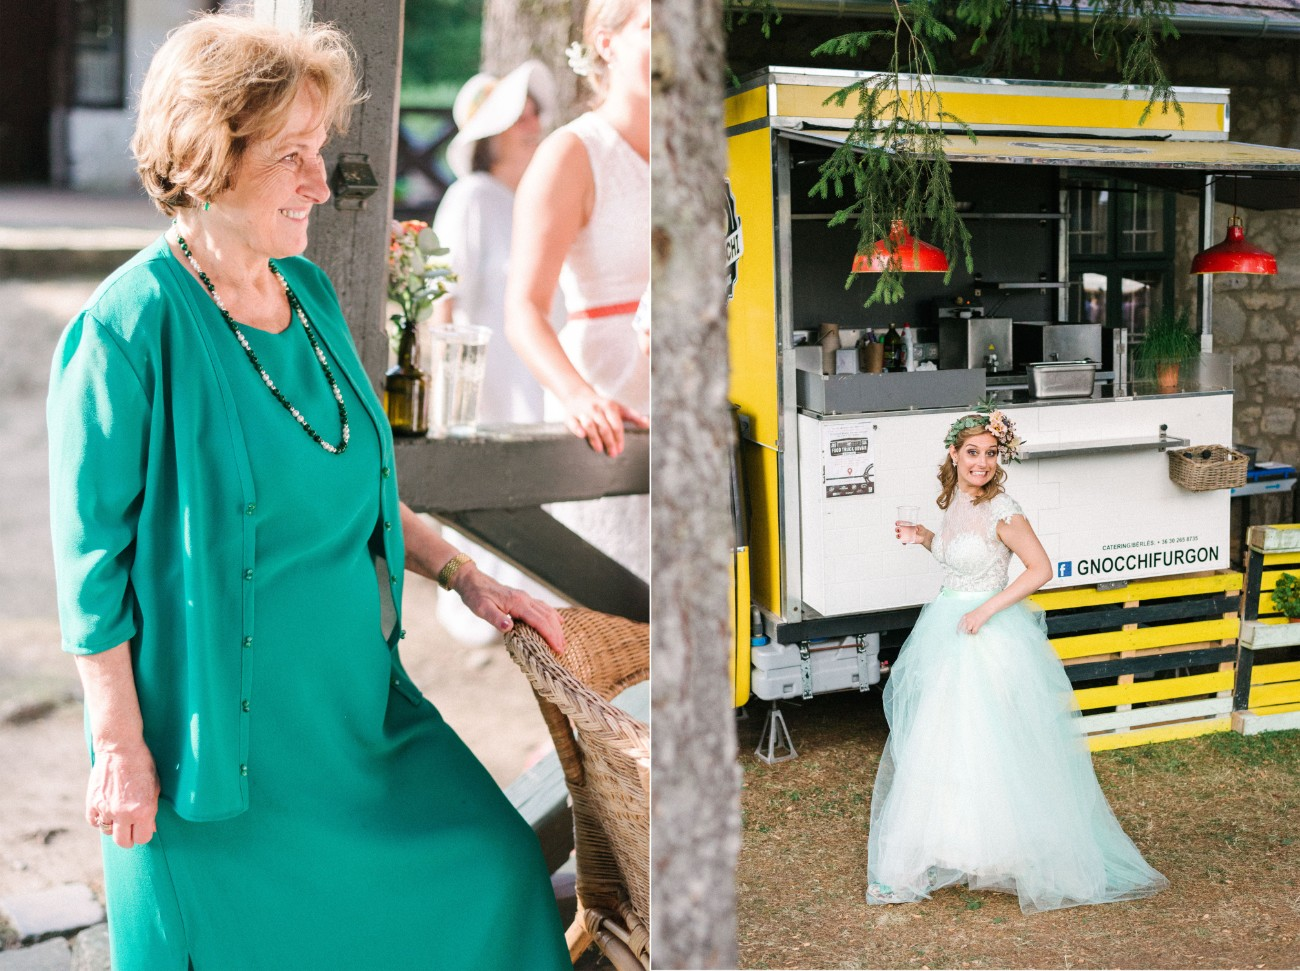 foodtruck wedding.jpg